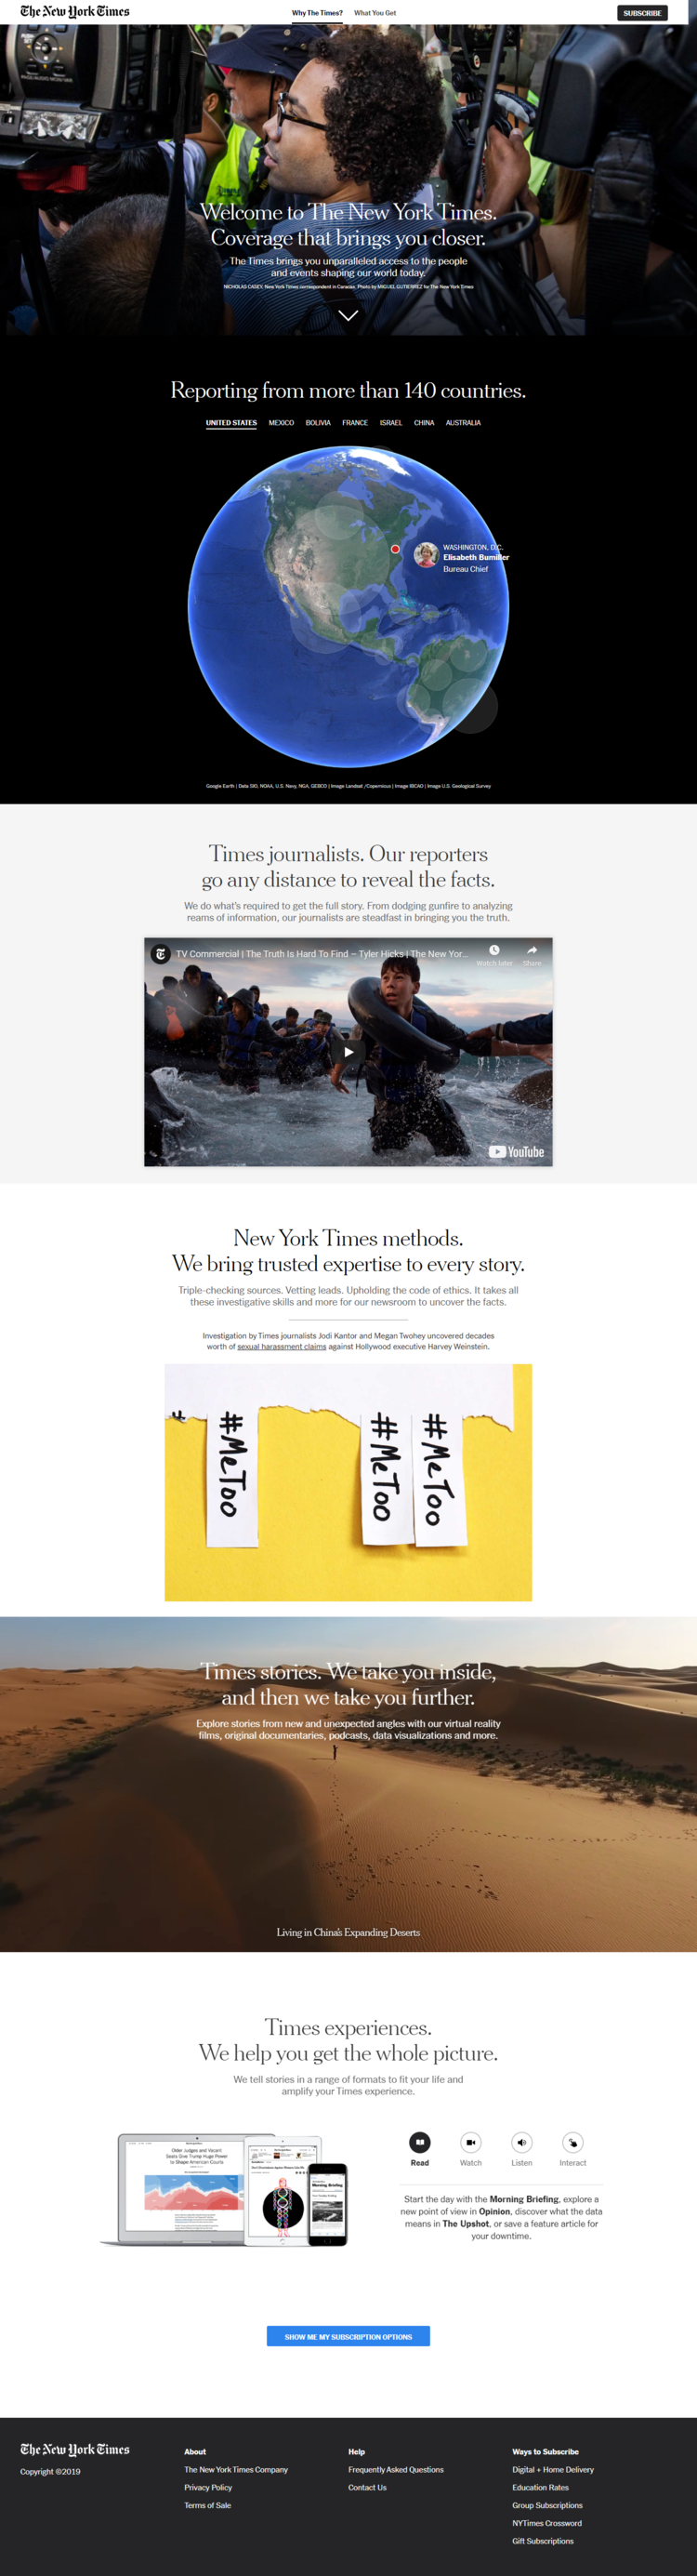 How to recreate the New York Times landing page look and feel in Ontraport